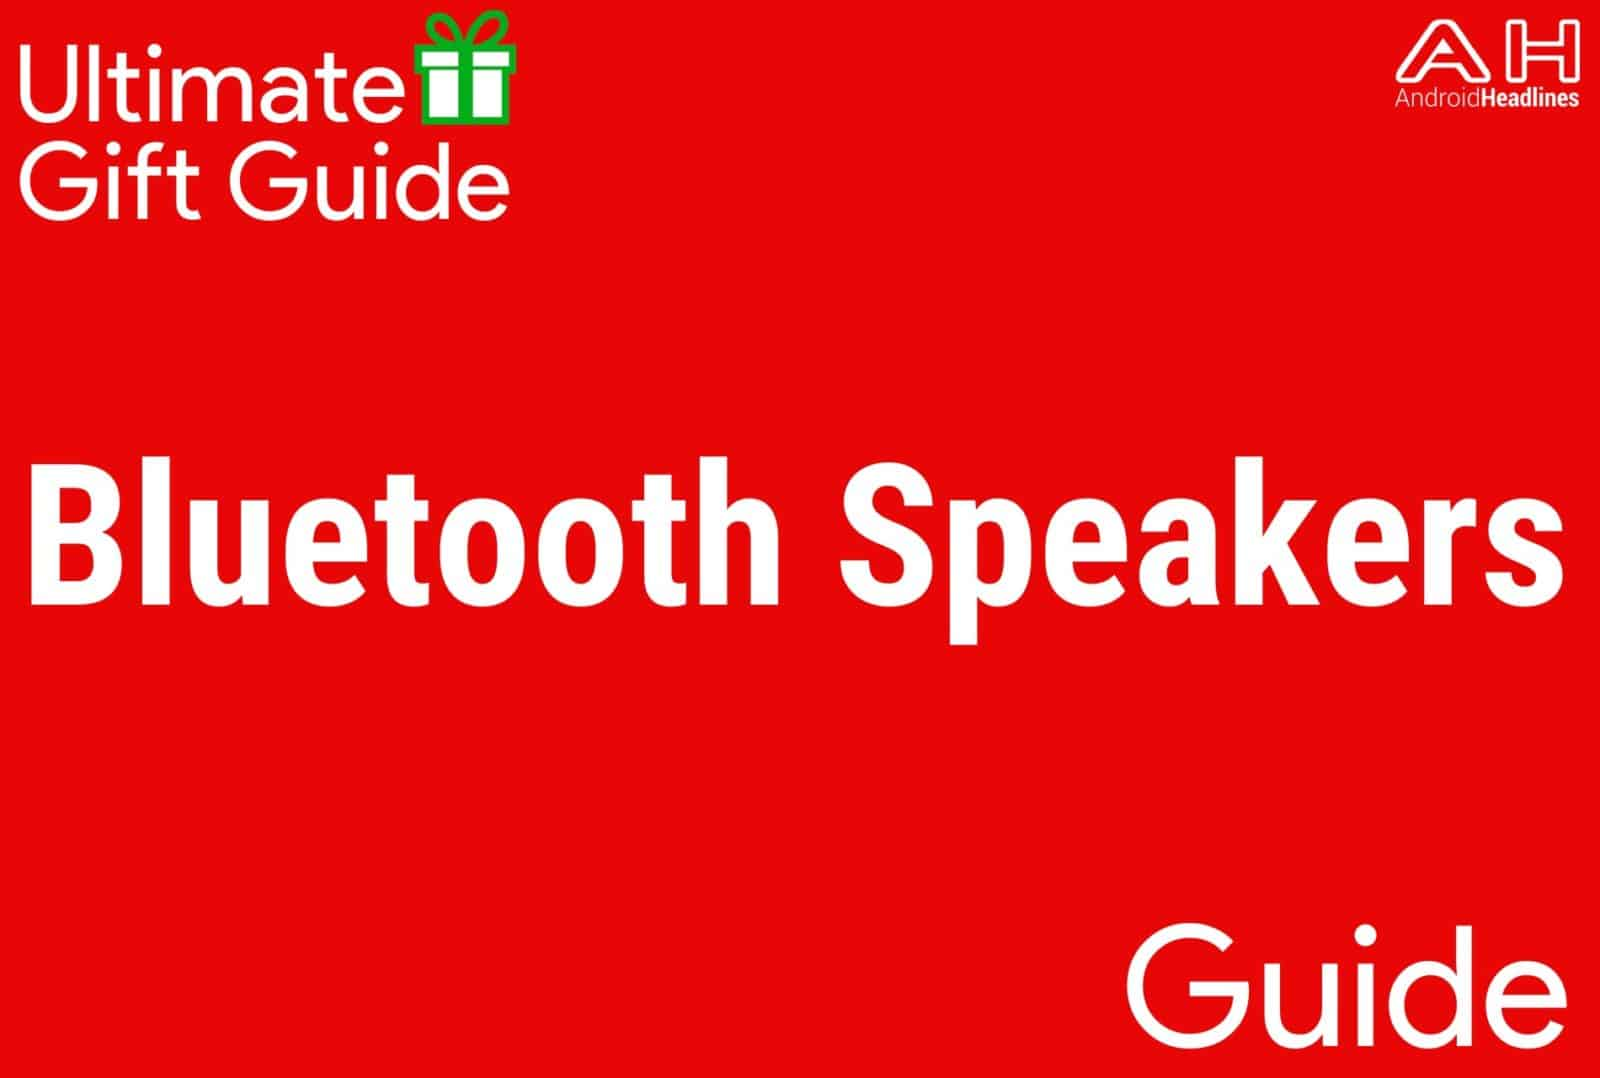 Bluetooth Speakers - Gift Guide 2015